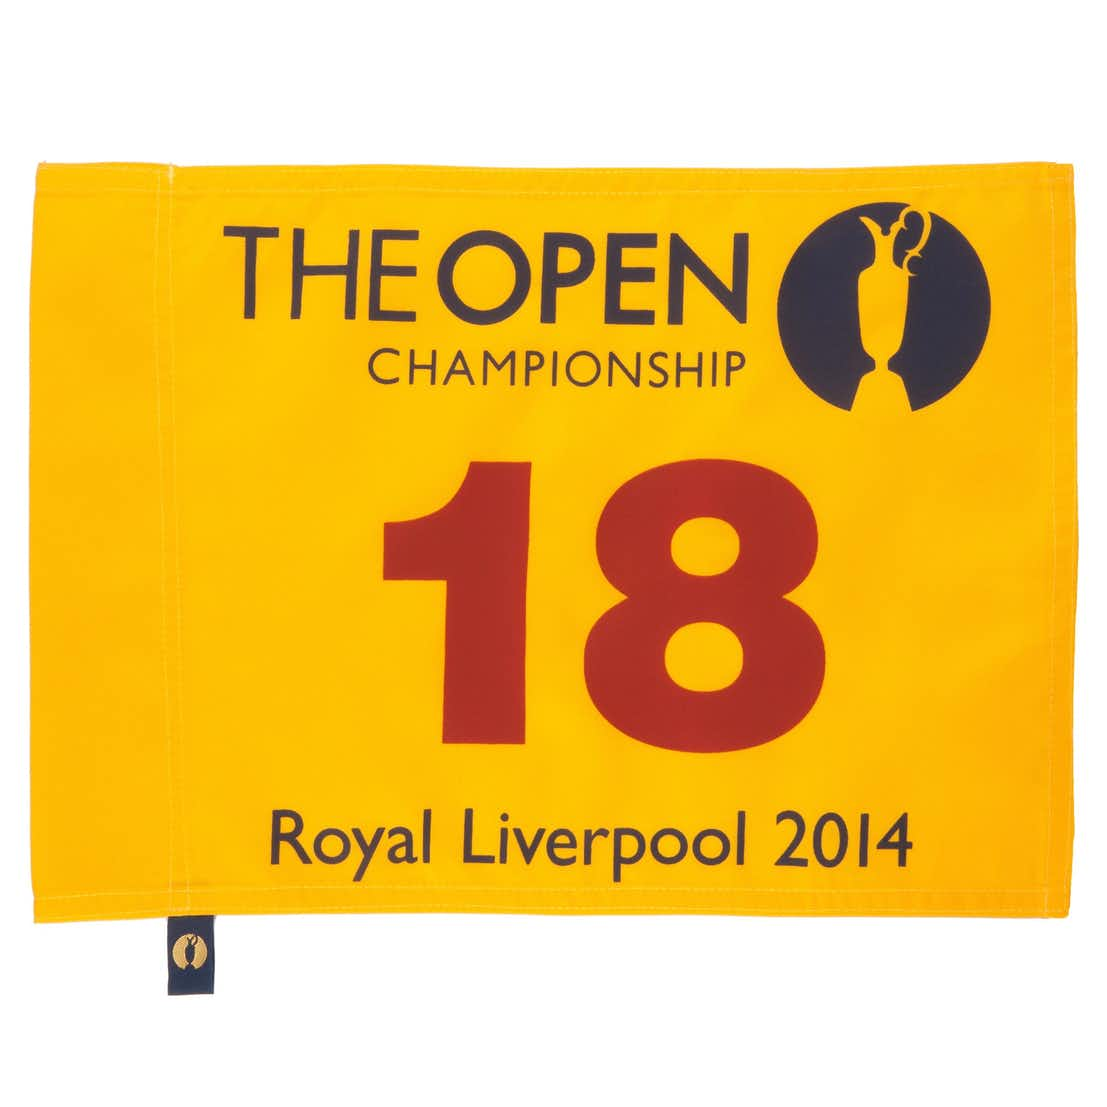 143rd Royal Liverpool Open Pin Flag - Yellow